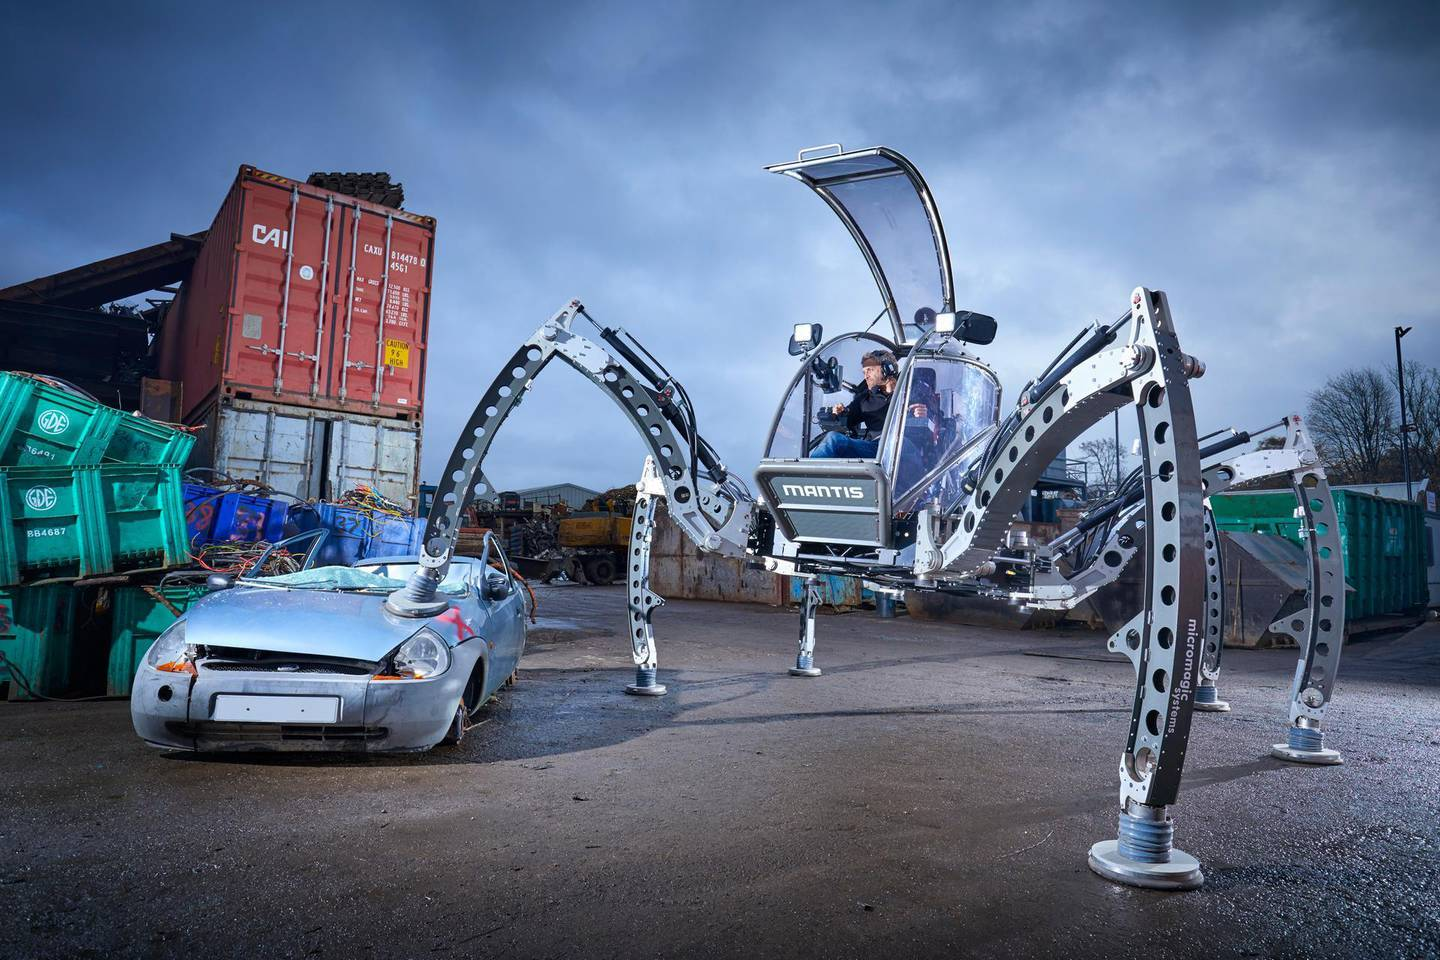 Mantis - Largest Rideable Hexapod Guinness World Records 2020 Photo Credit: Paul Michael Hughes/Guinness World Records